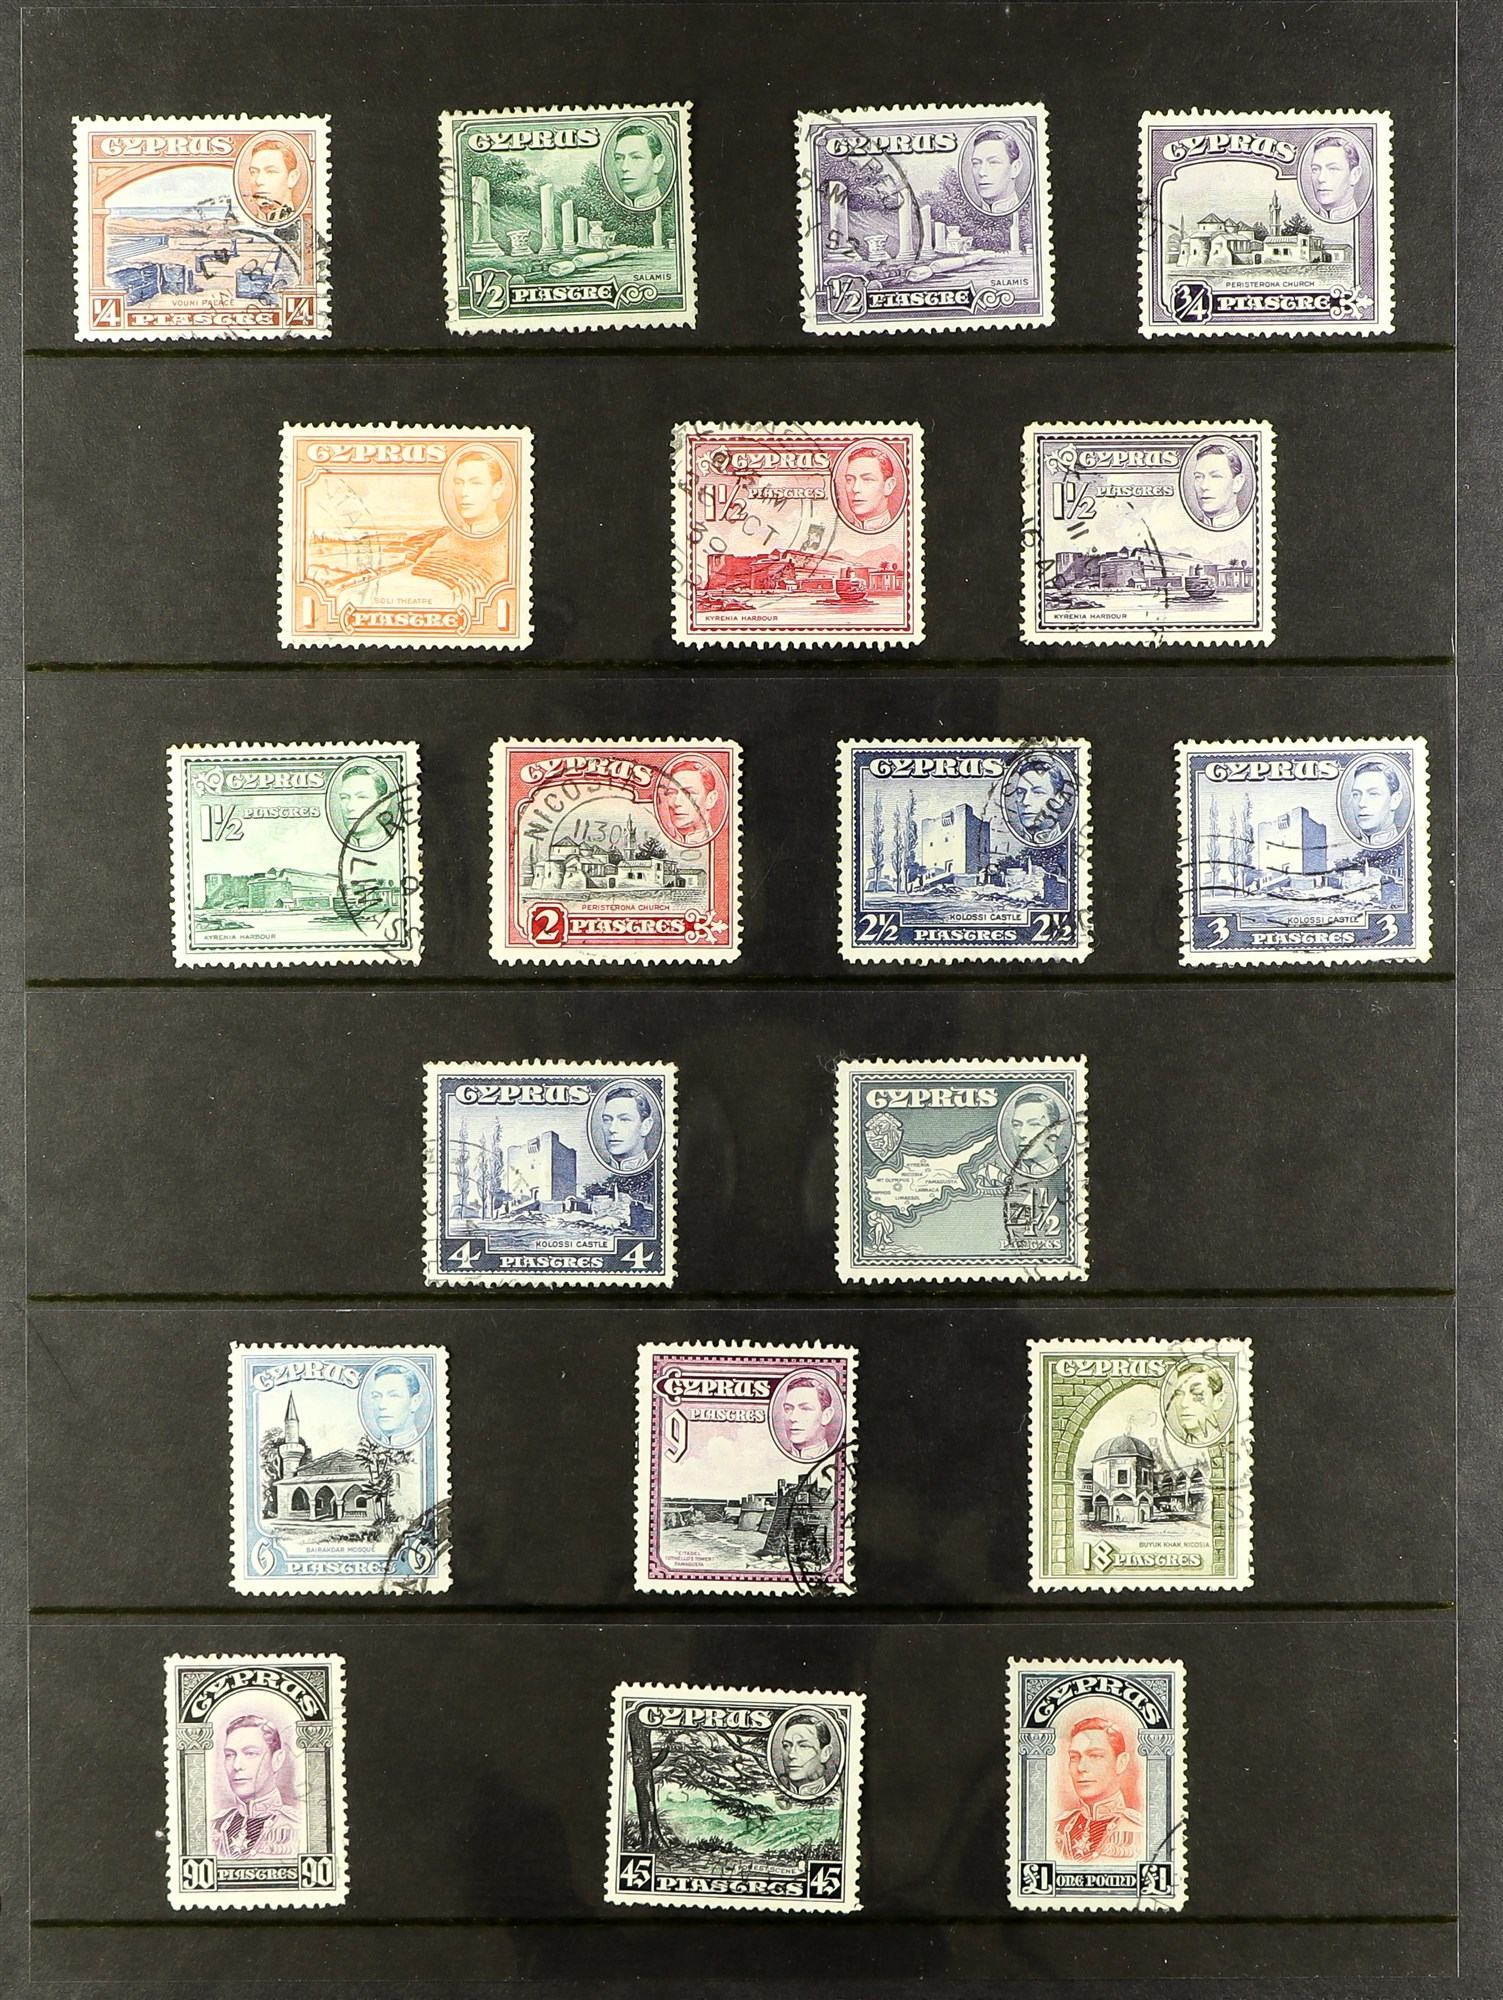 CYPRUS 1880-1935 old used collection incl. 1880 GB overprints including 2½d & ½d plate 15 used, - Image 7 of 7